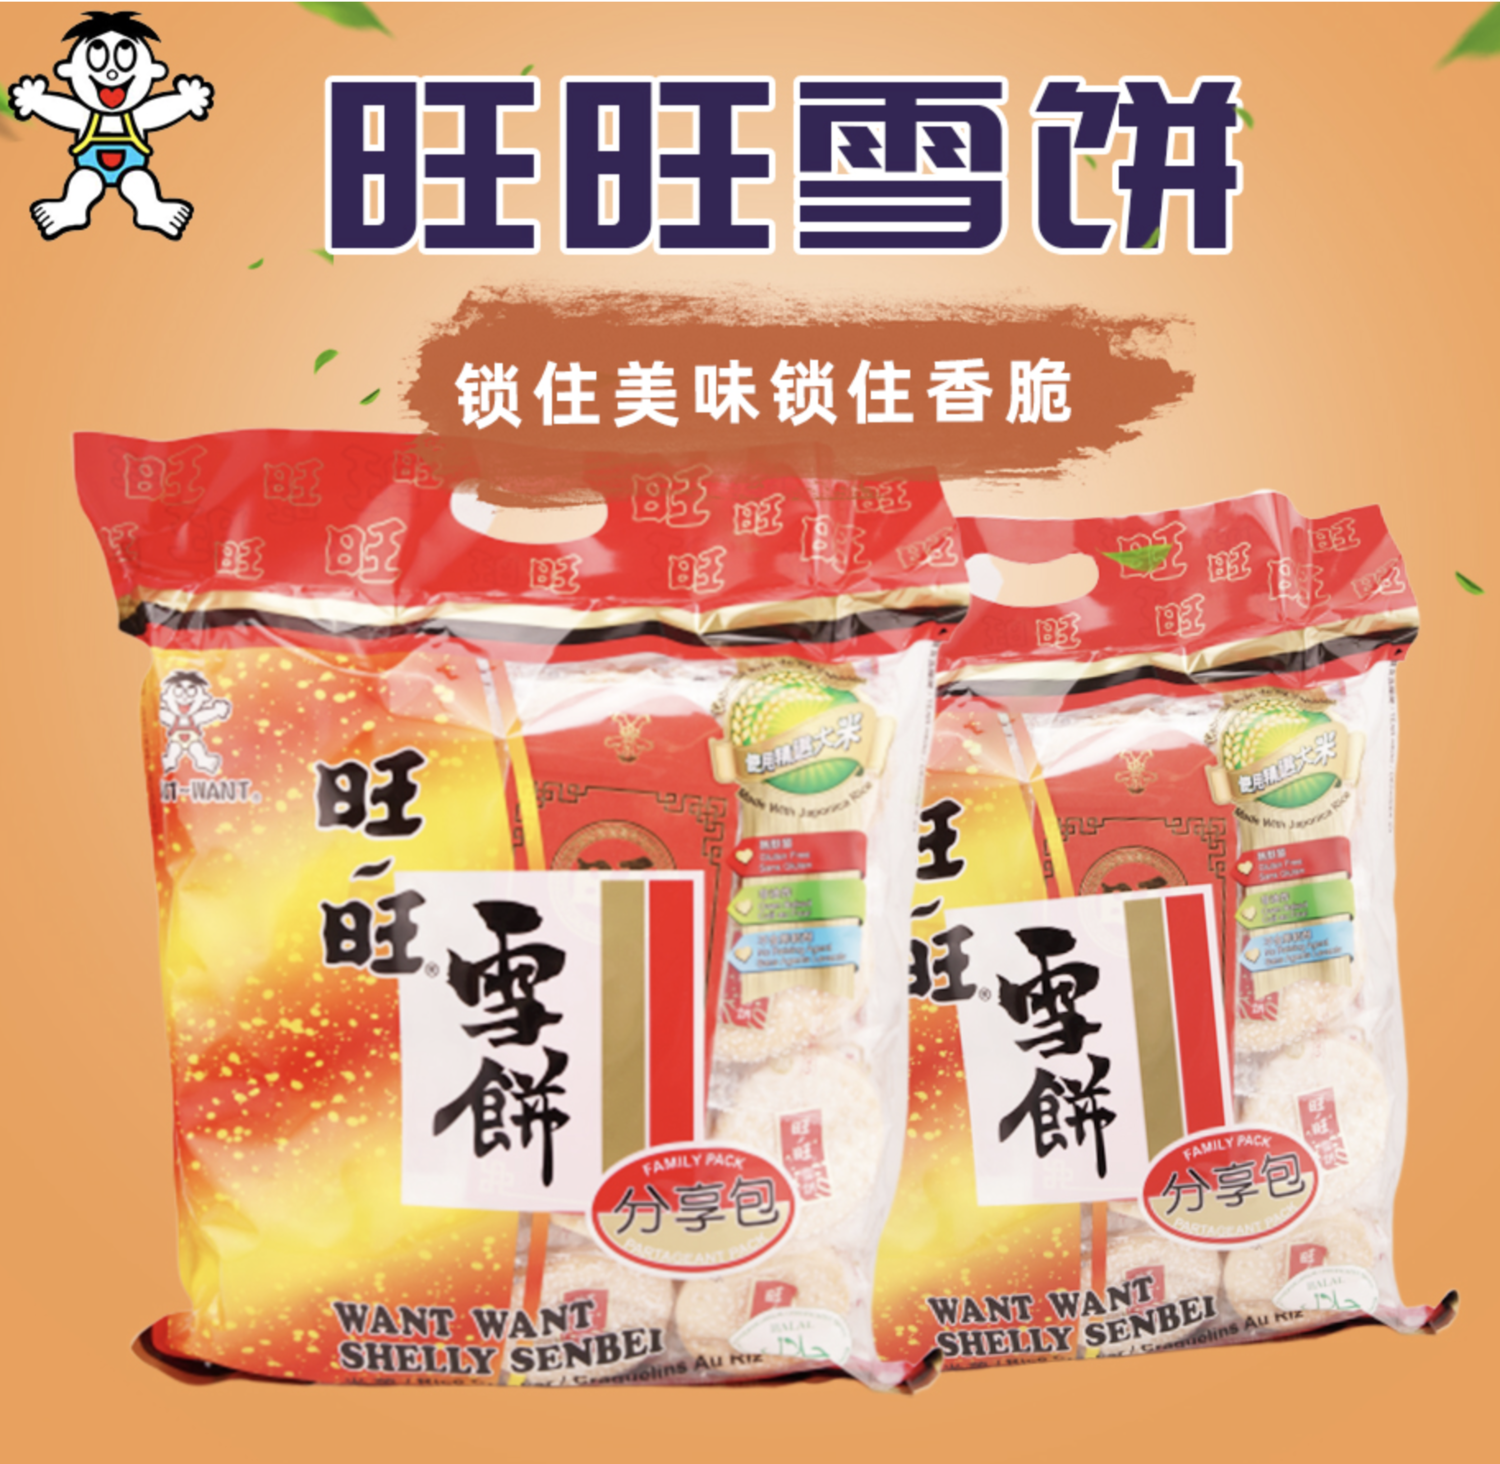 旺旺雪饼 WANT WANT SHELLY SENBEI (RICE CRACKER/CRAQUELINS) 520g